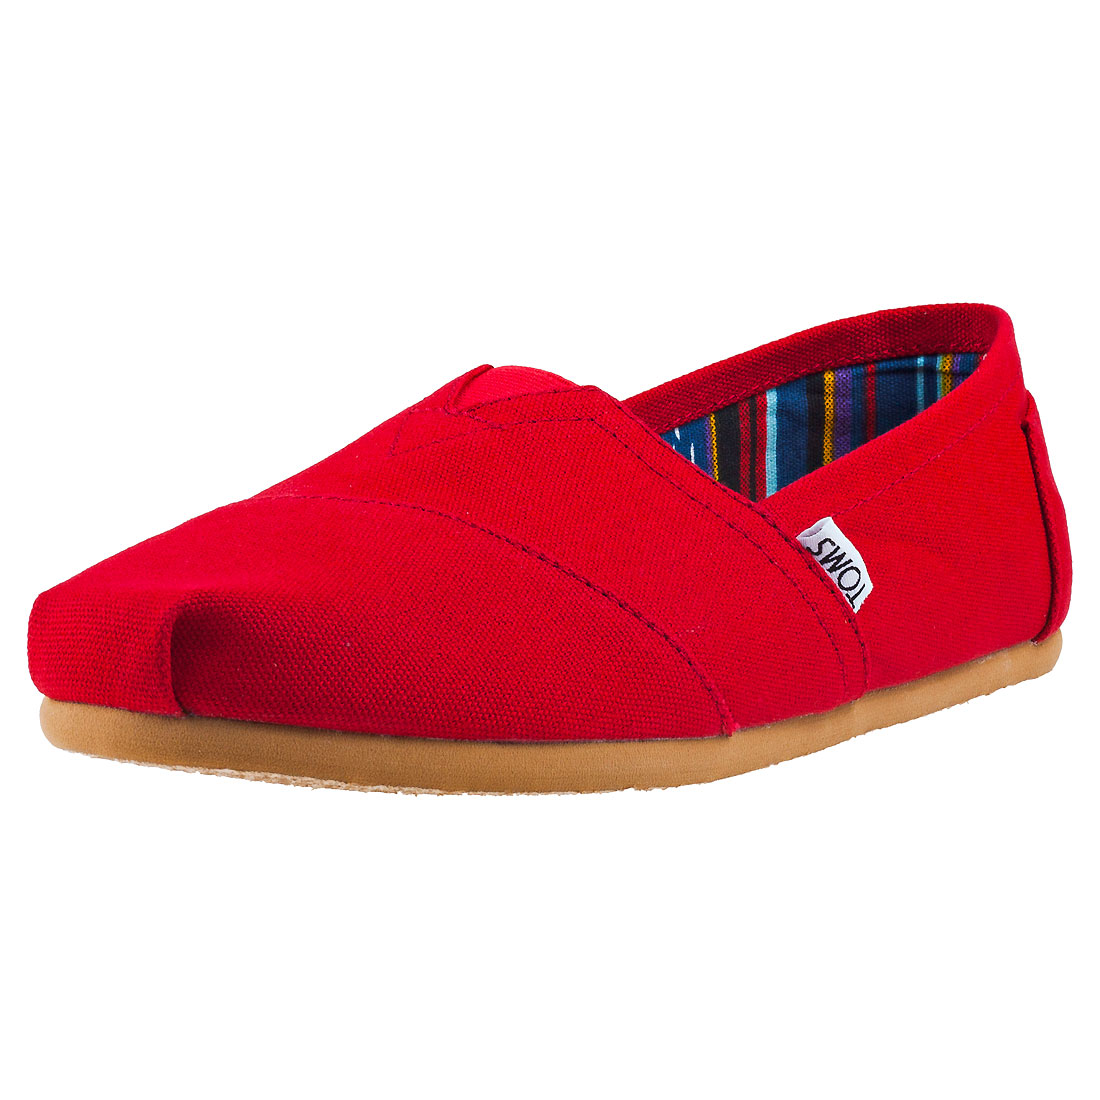 Image is loading Toms-Classic-Mens-Red-Canvas-Slip-On 7412b005a023